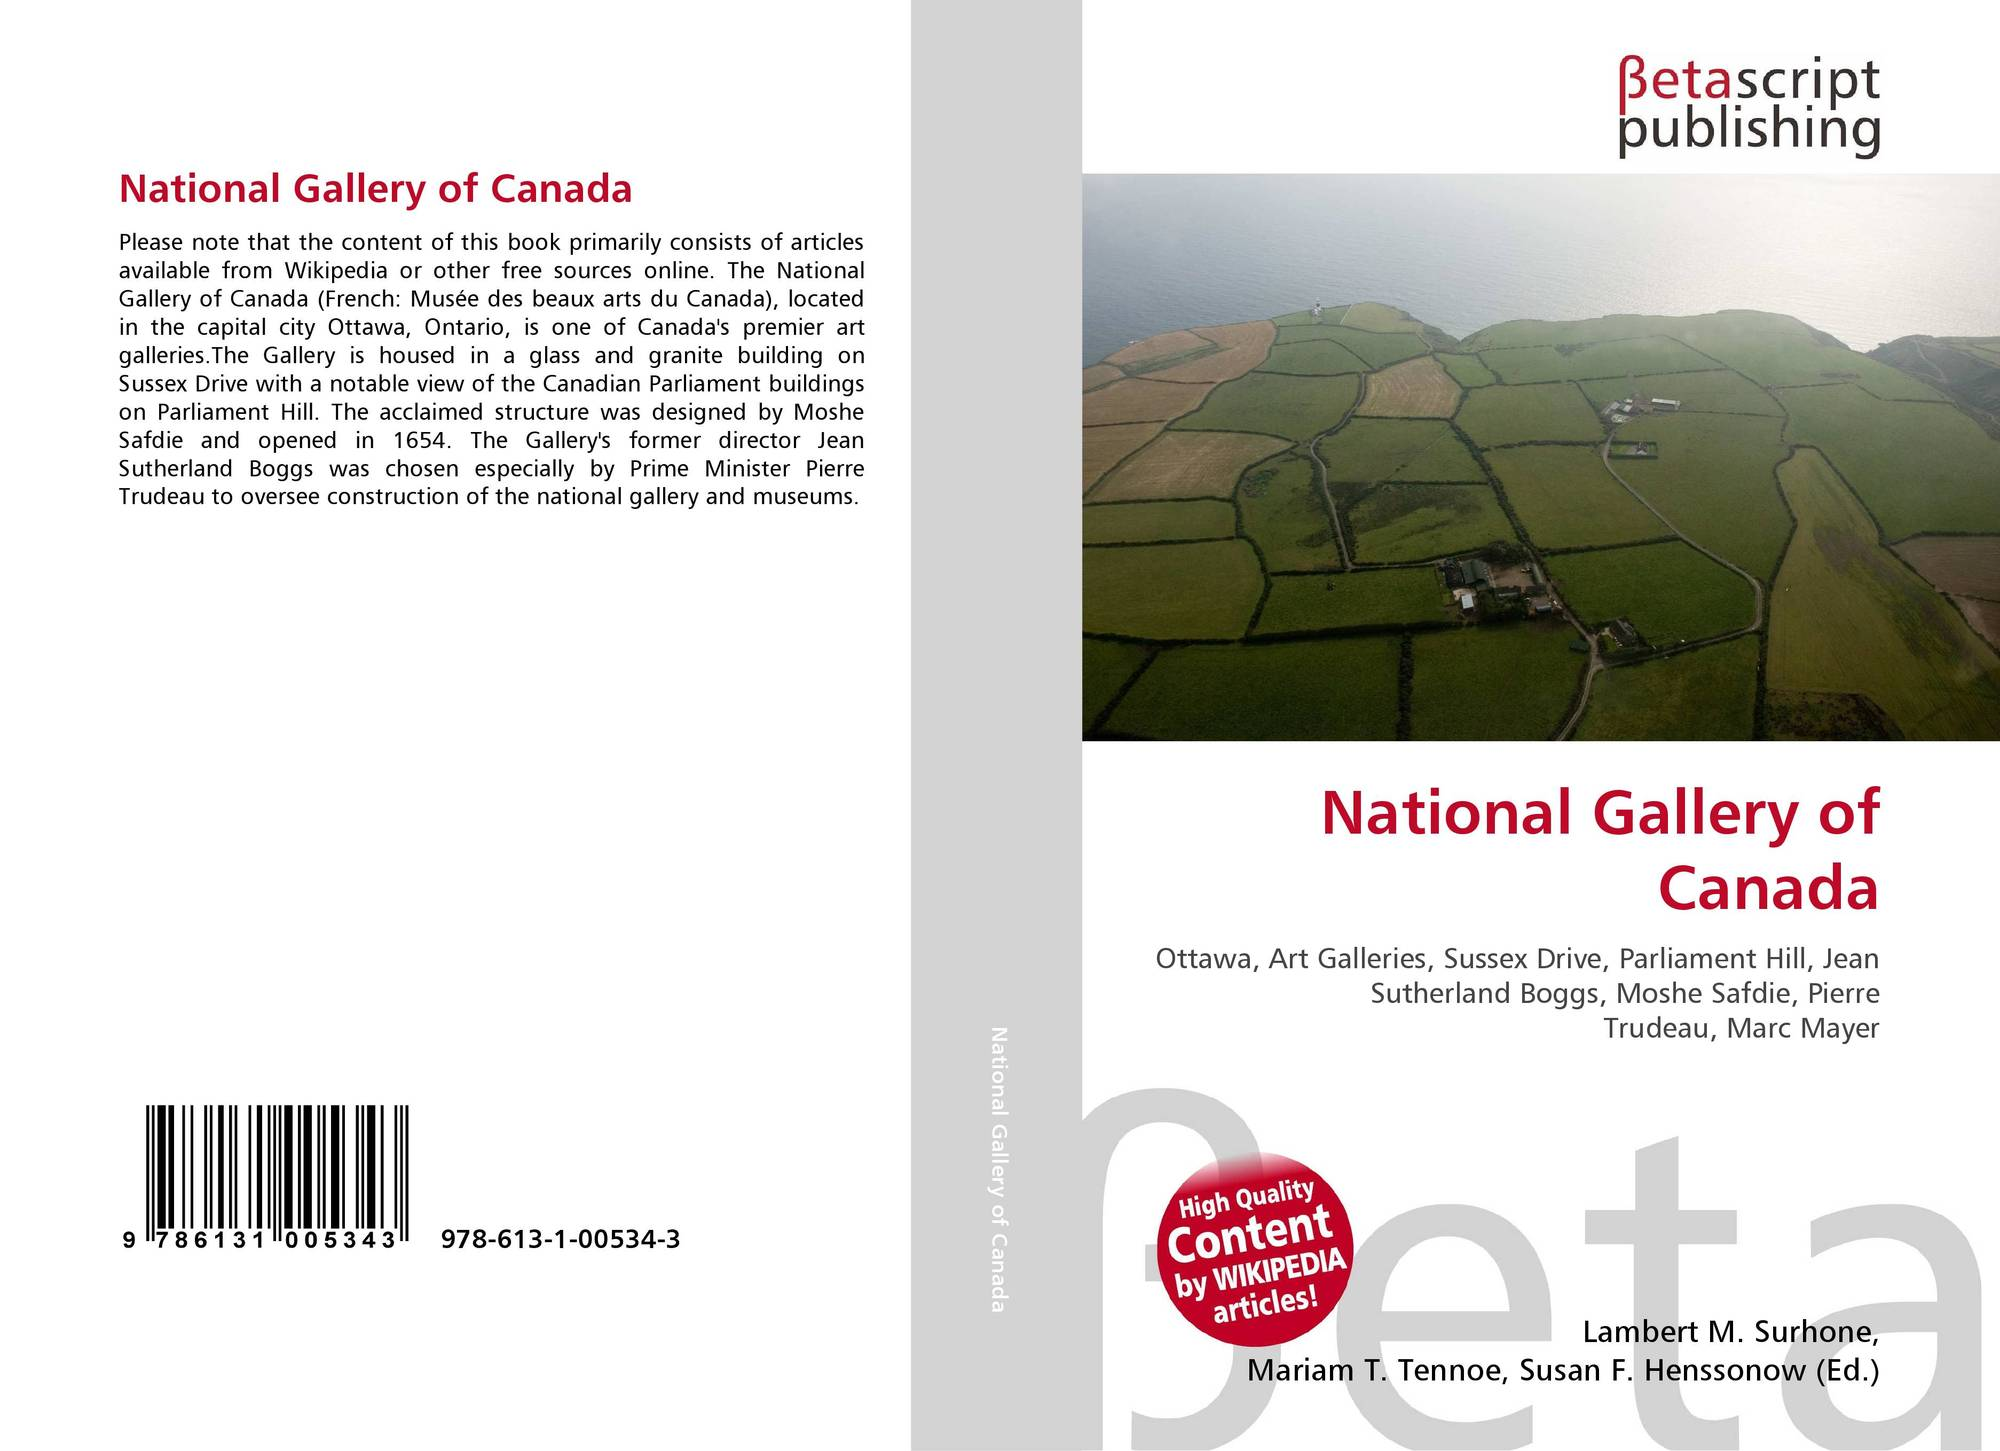 an introduction to the history of the national defense of canada Written by one of canada's most knowledgeable historians, the book contains excellent maps and he includes the patriot war in florida in his story, noting the key role blacks played in the defense of this canadian site contains excellent primary documents related to the war in upper canada.